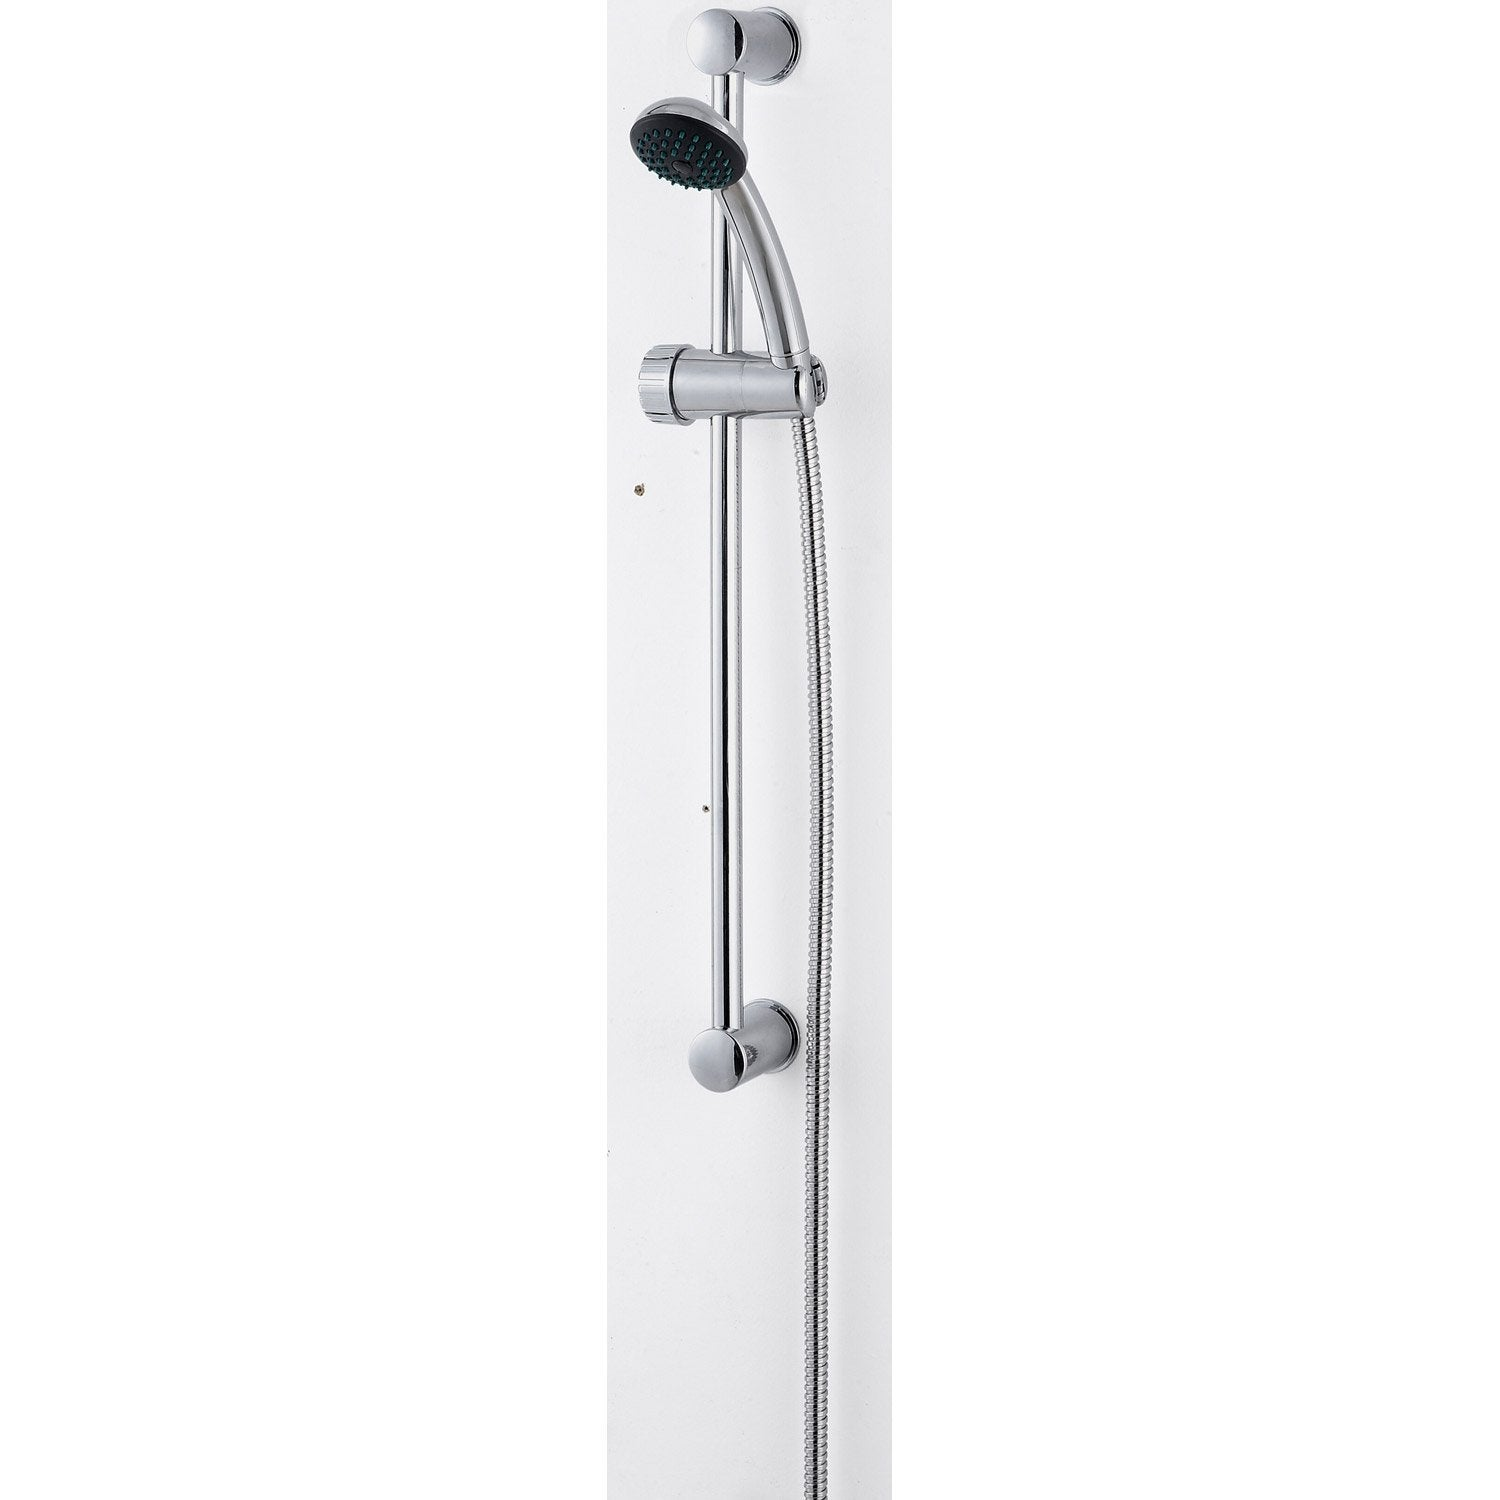 Ensemble de douche 3 jets basic 3 chrom leroy merlin - Ensemble de douche leroy merlin ...